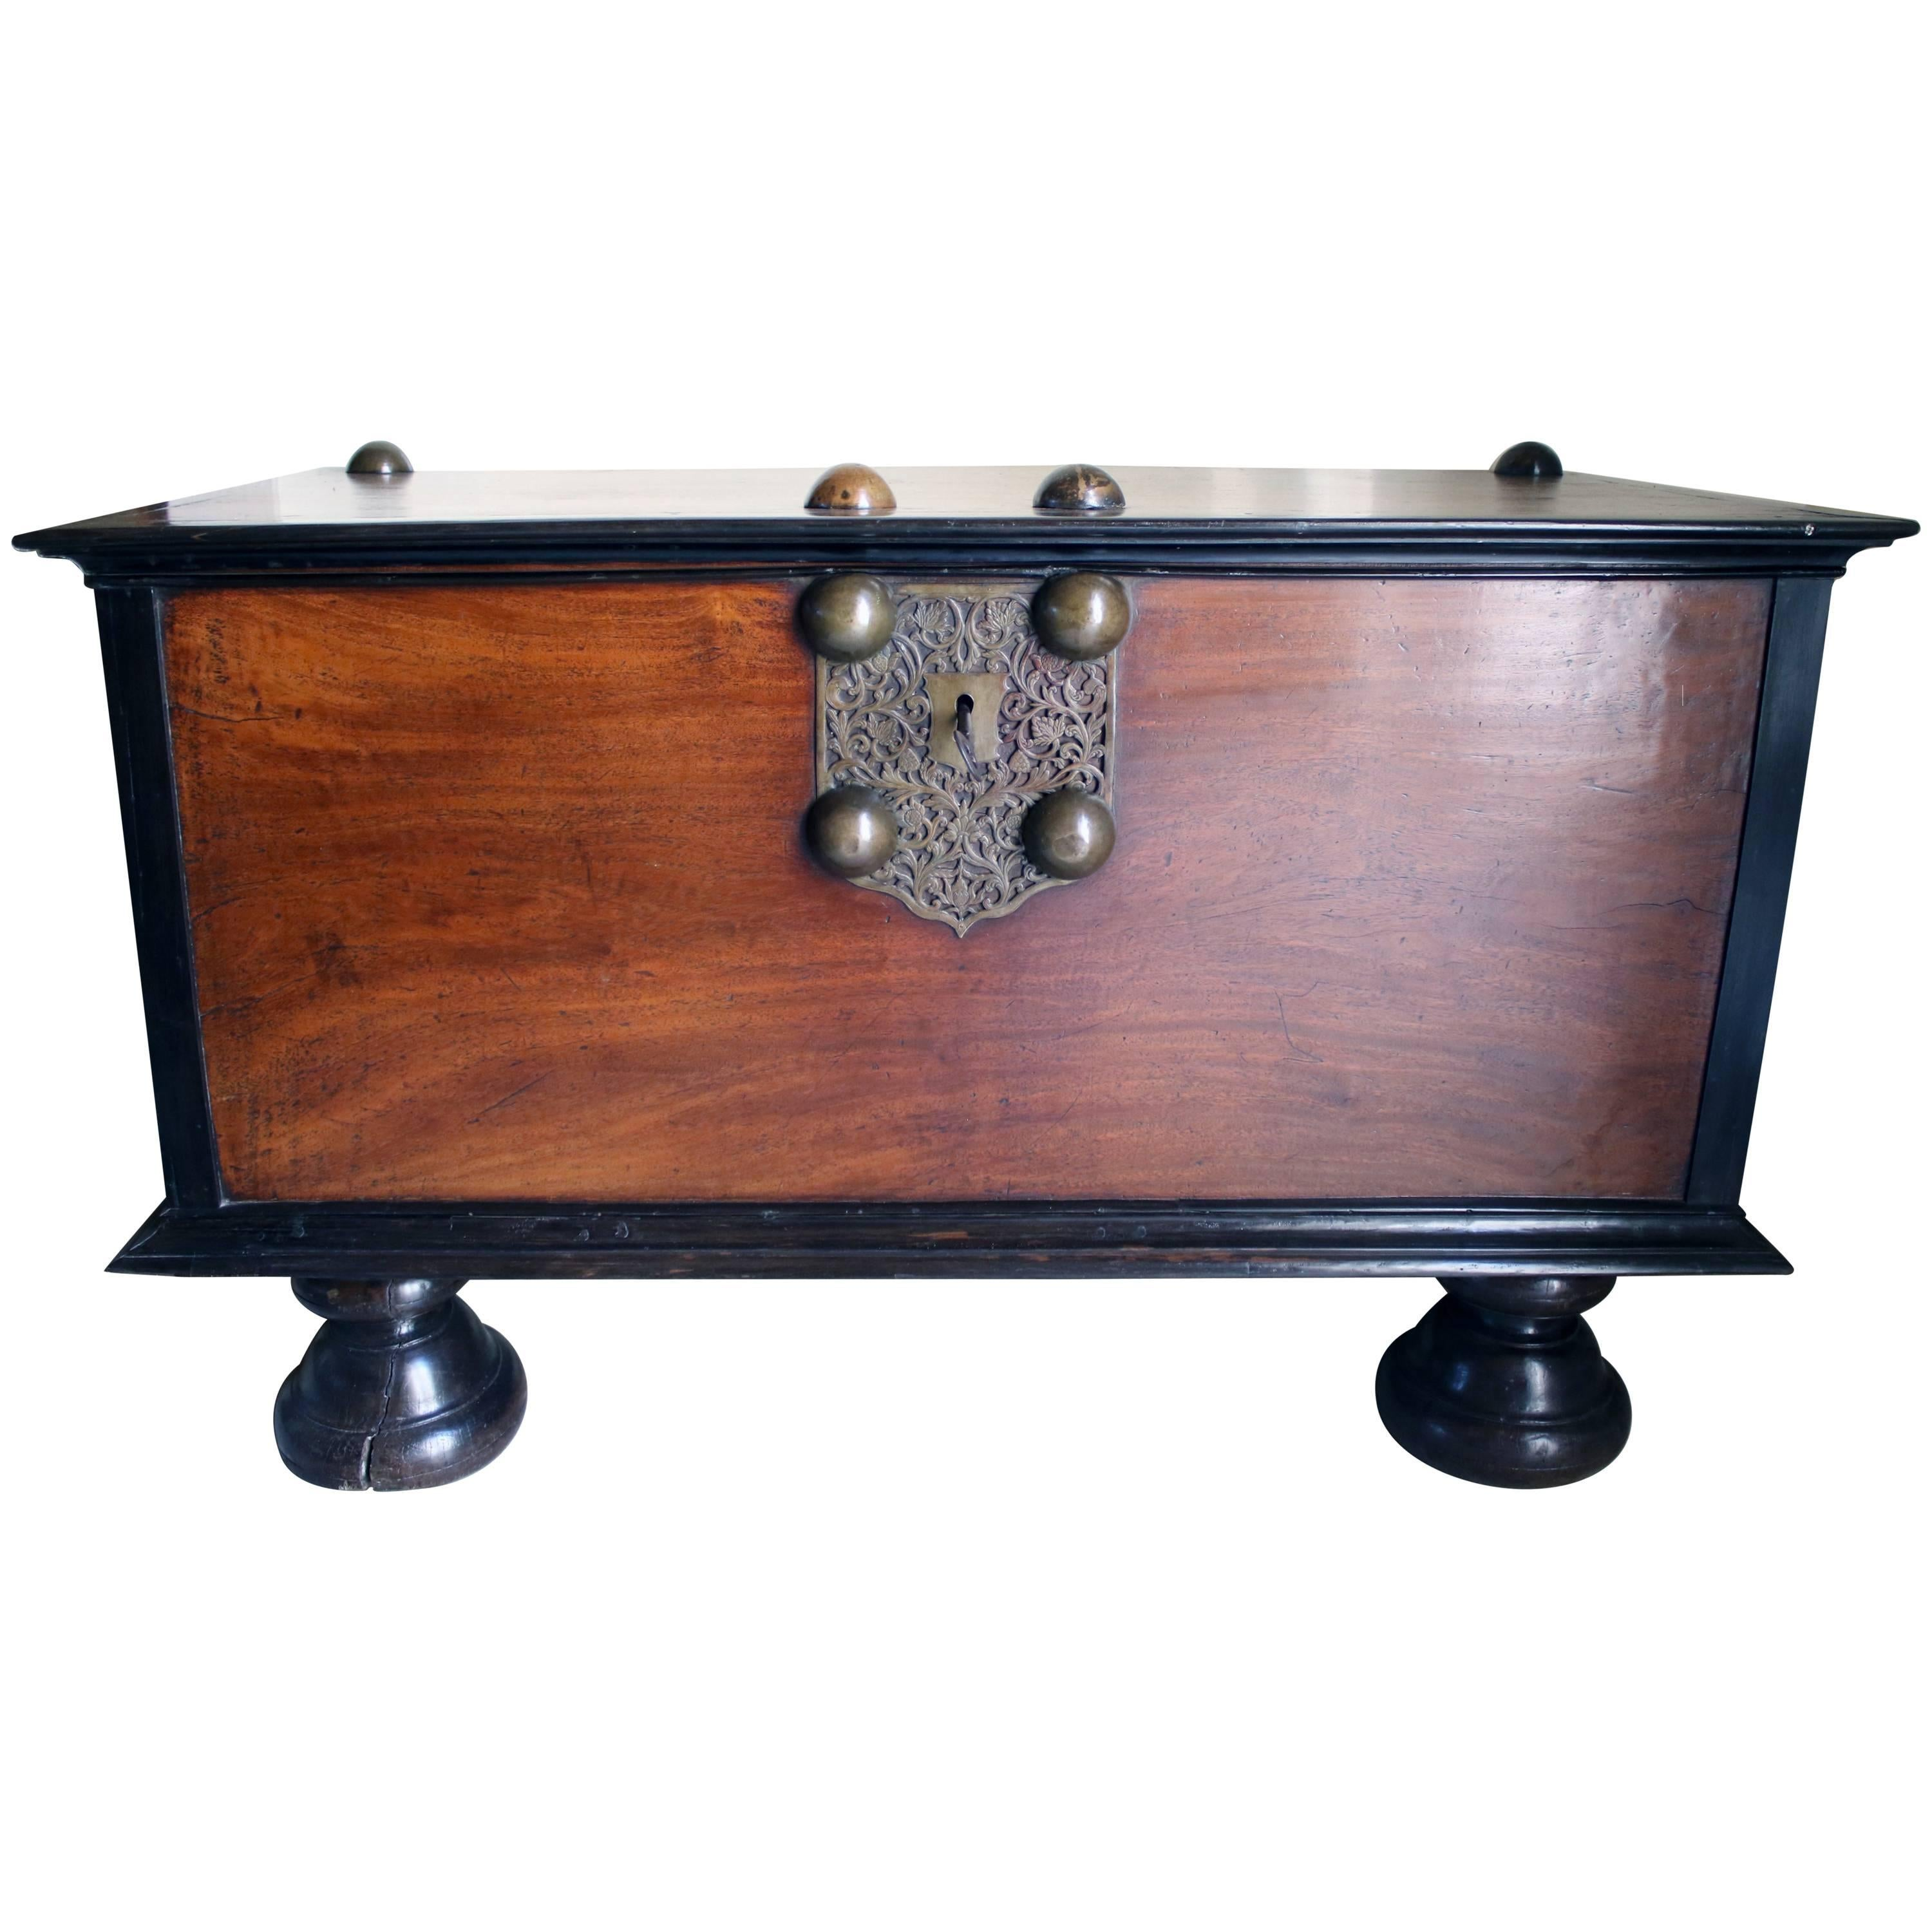 19th Century British Colonial Indian Storage Trunk Of Solid Mahogany